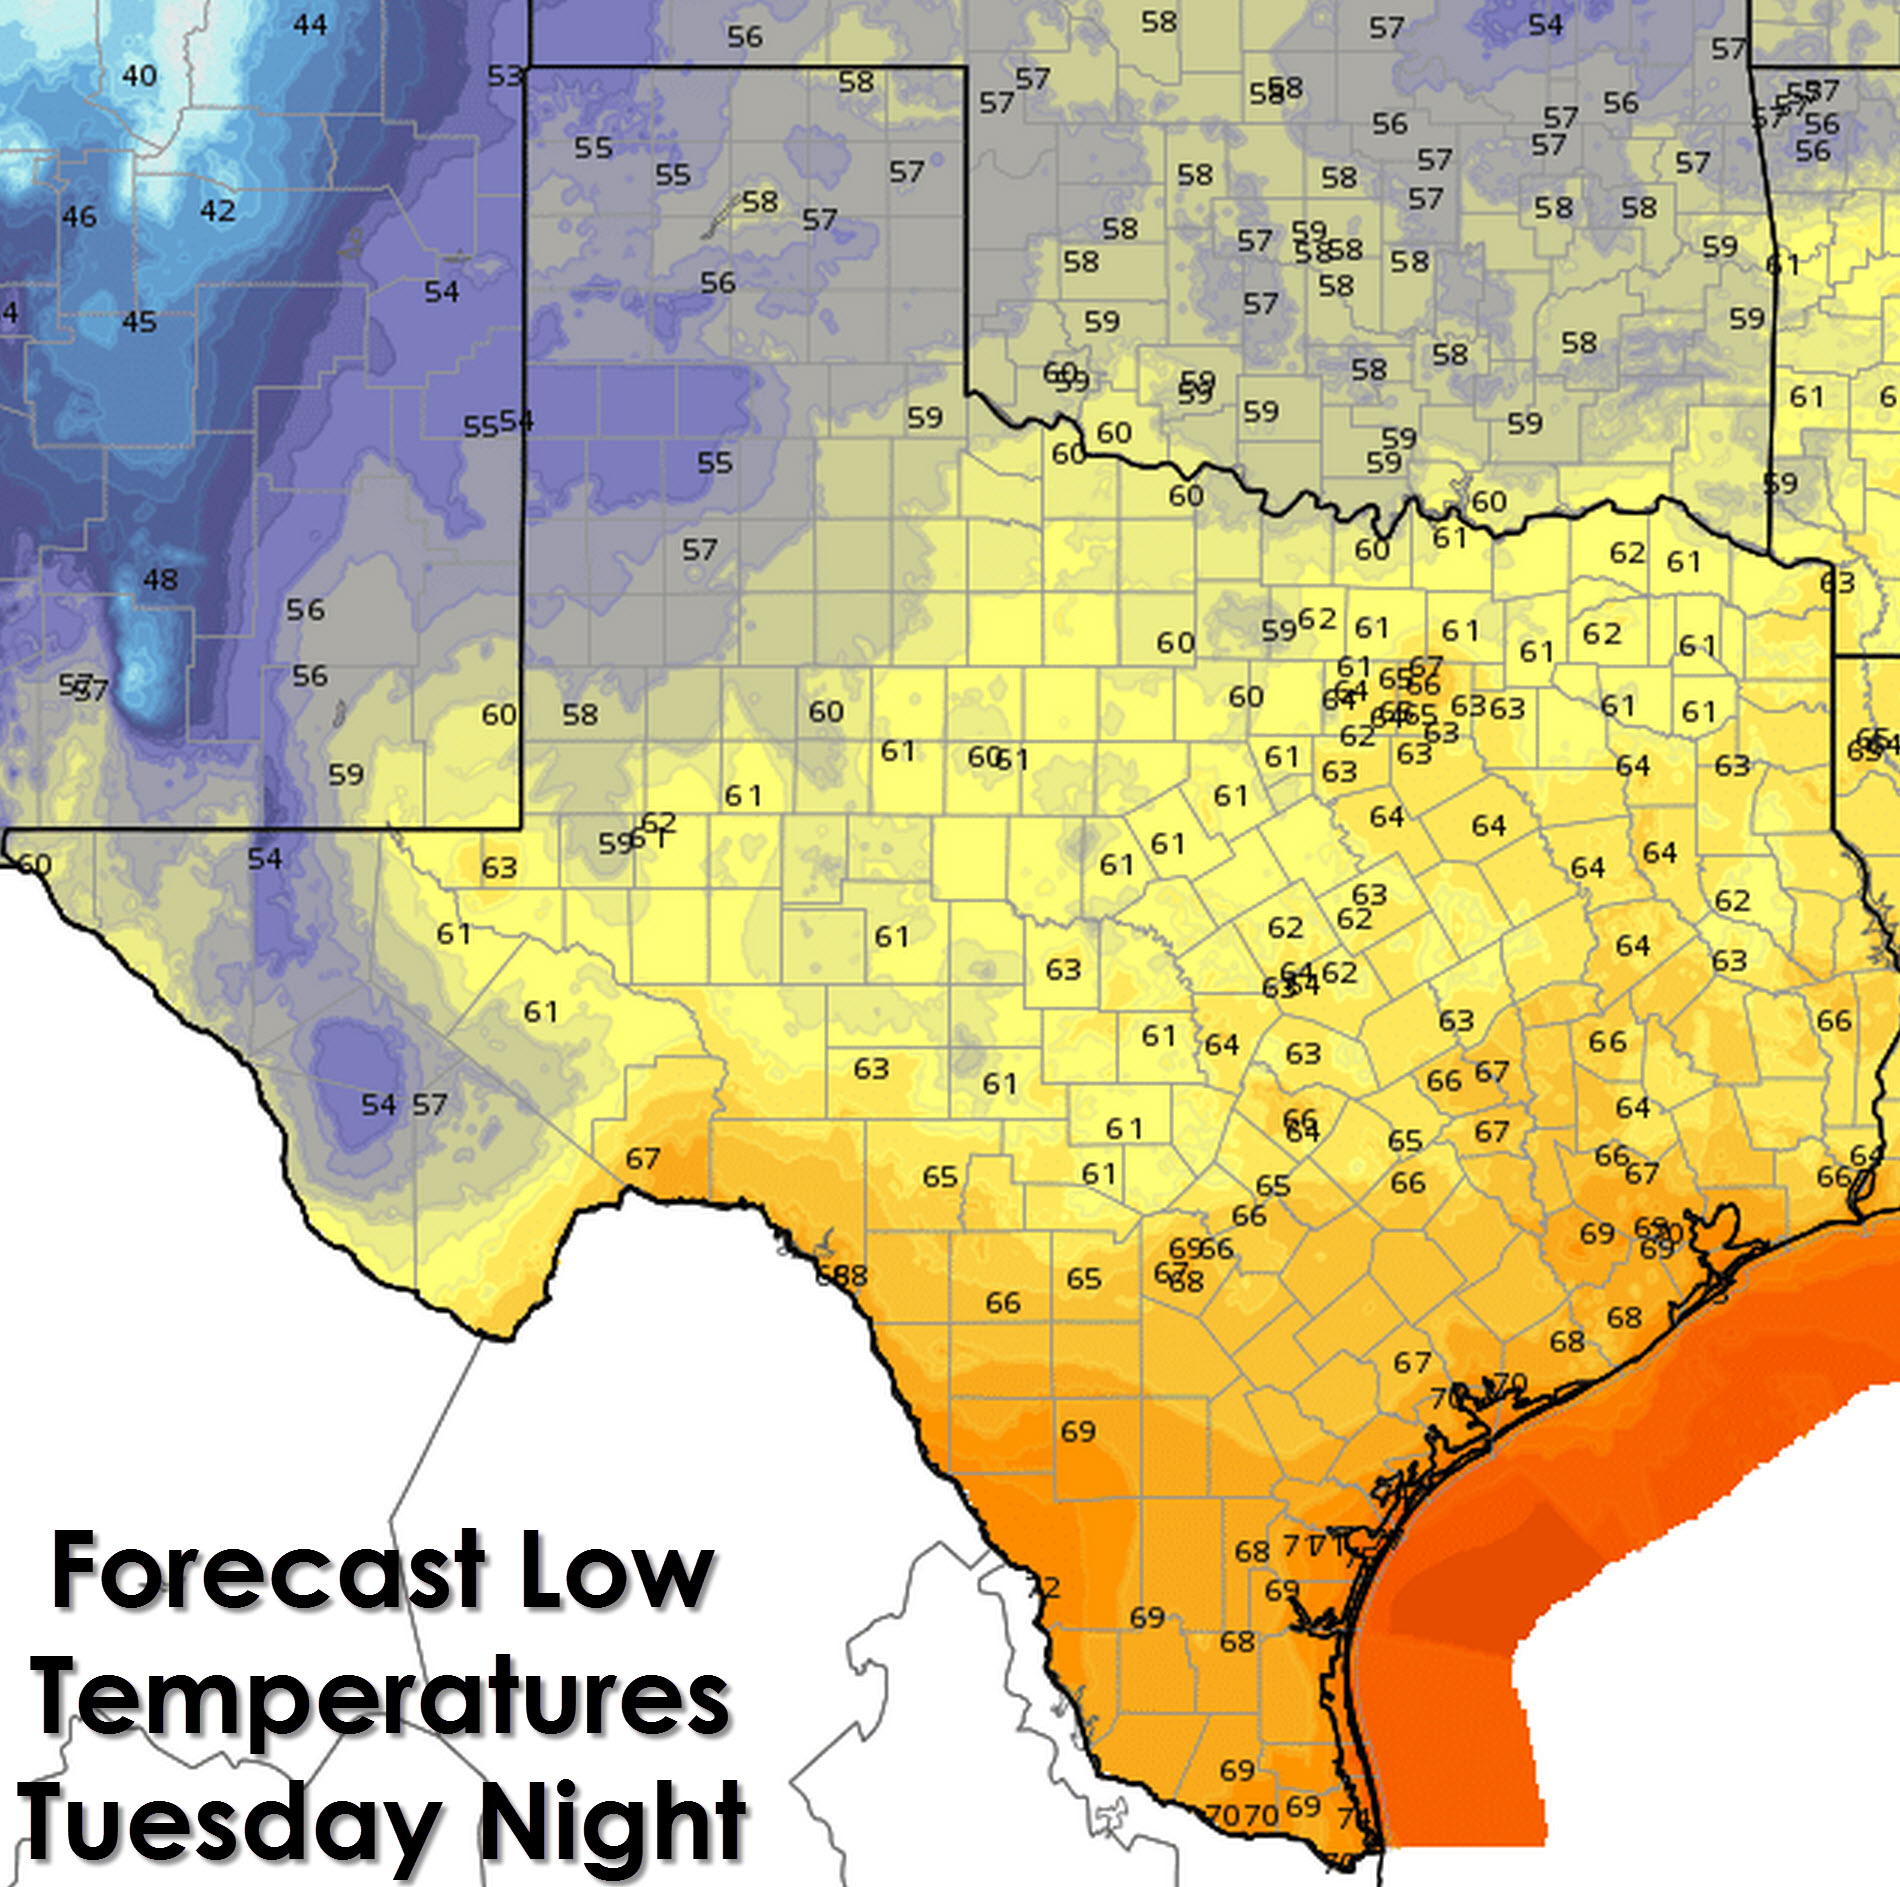 Low temperature forecast tonight (Tuesday Night)